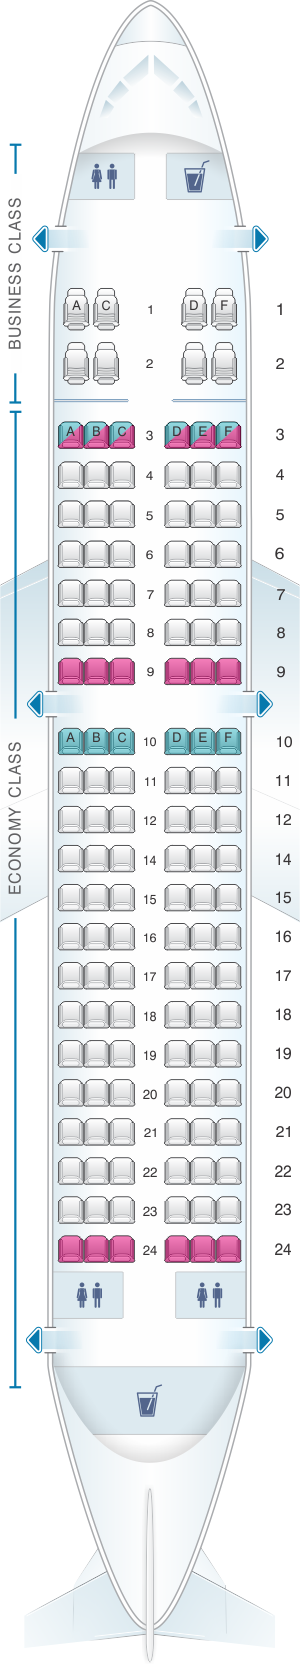 Seat map for Ural Airlines Airbus A319